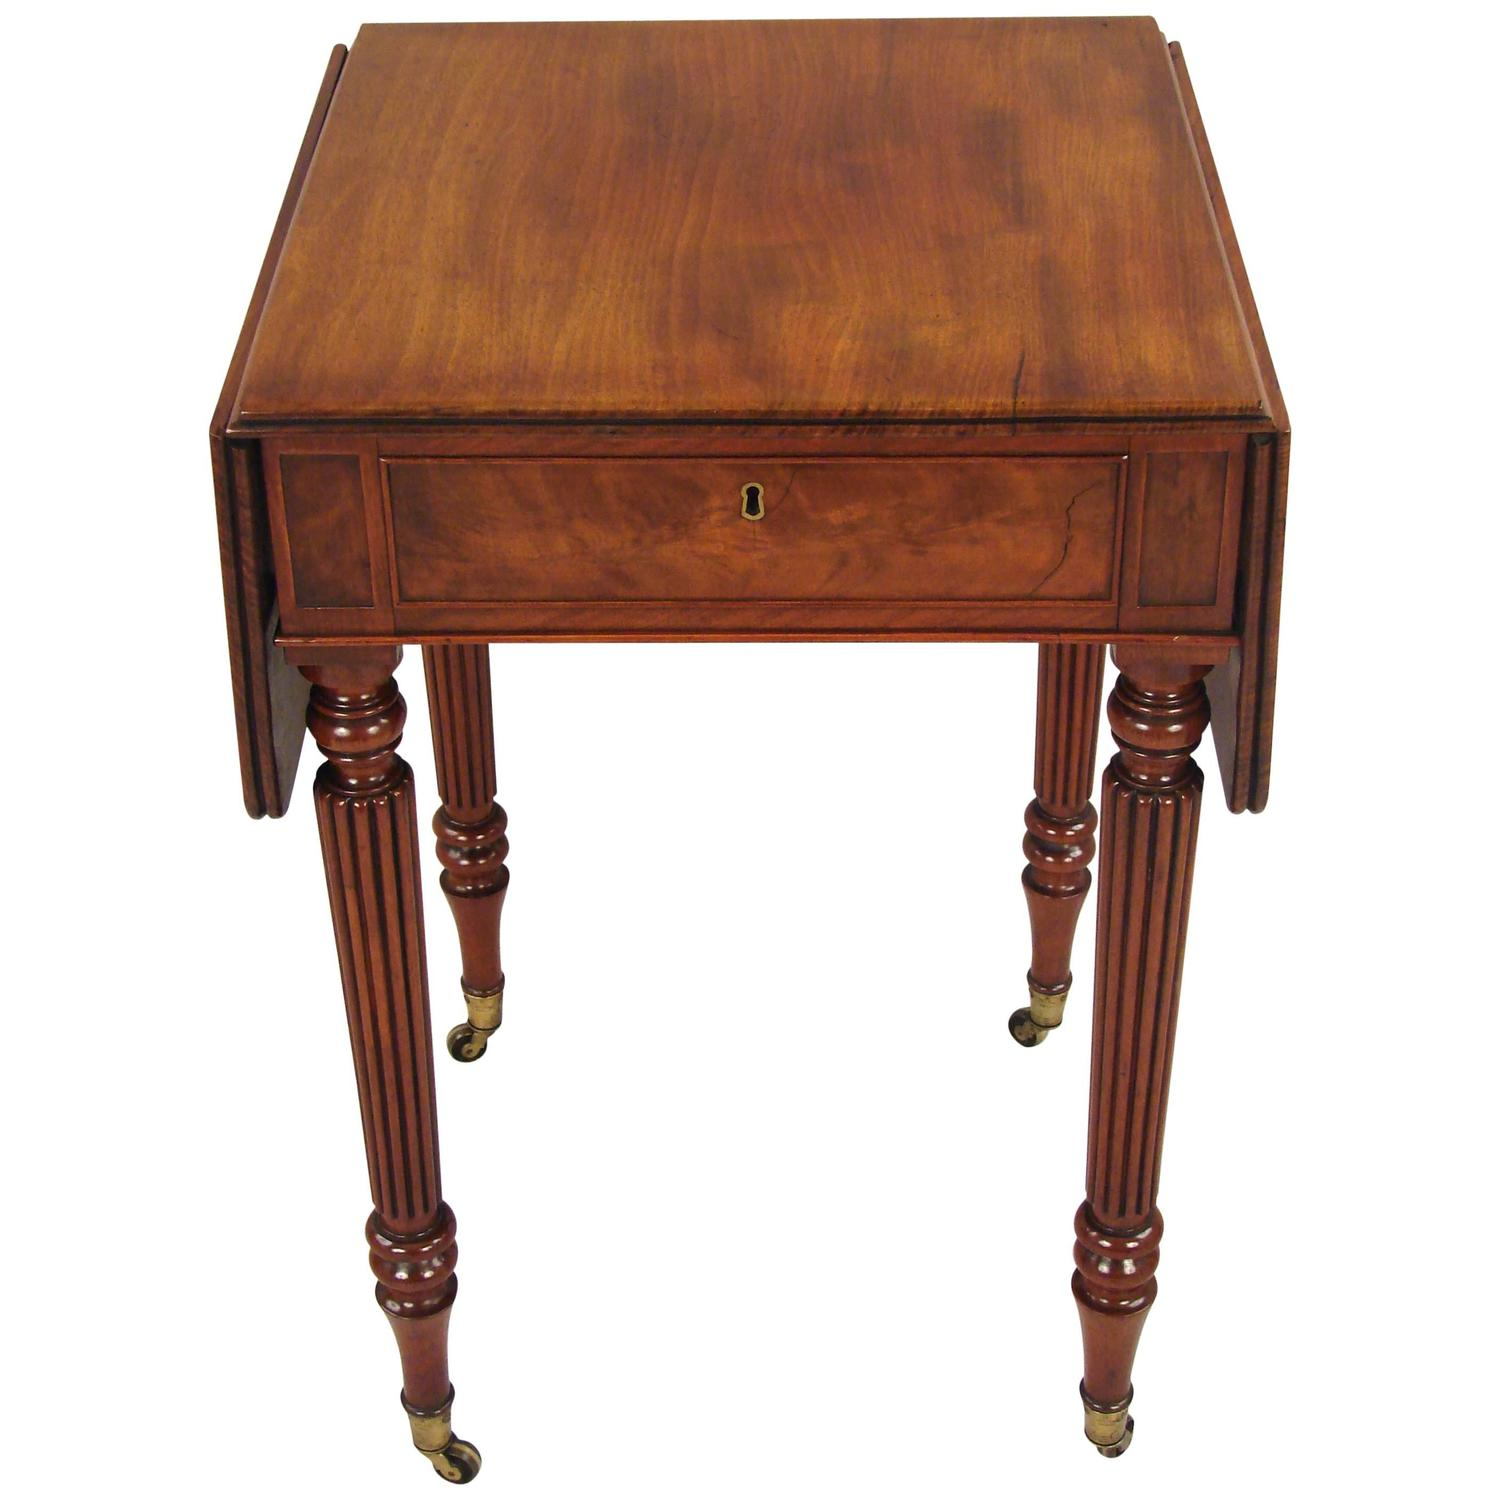 Small Regency Mahogany Drop Leaf Table In The Manner Of